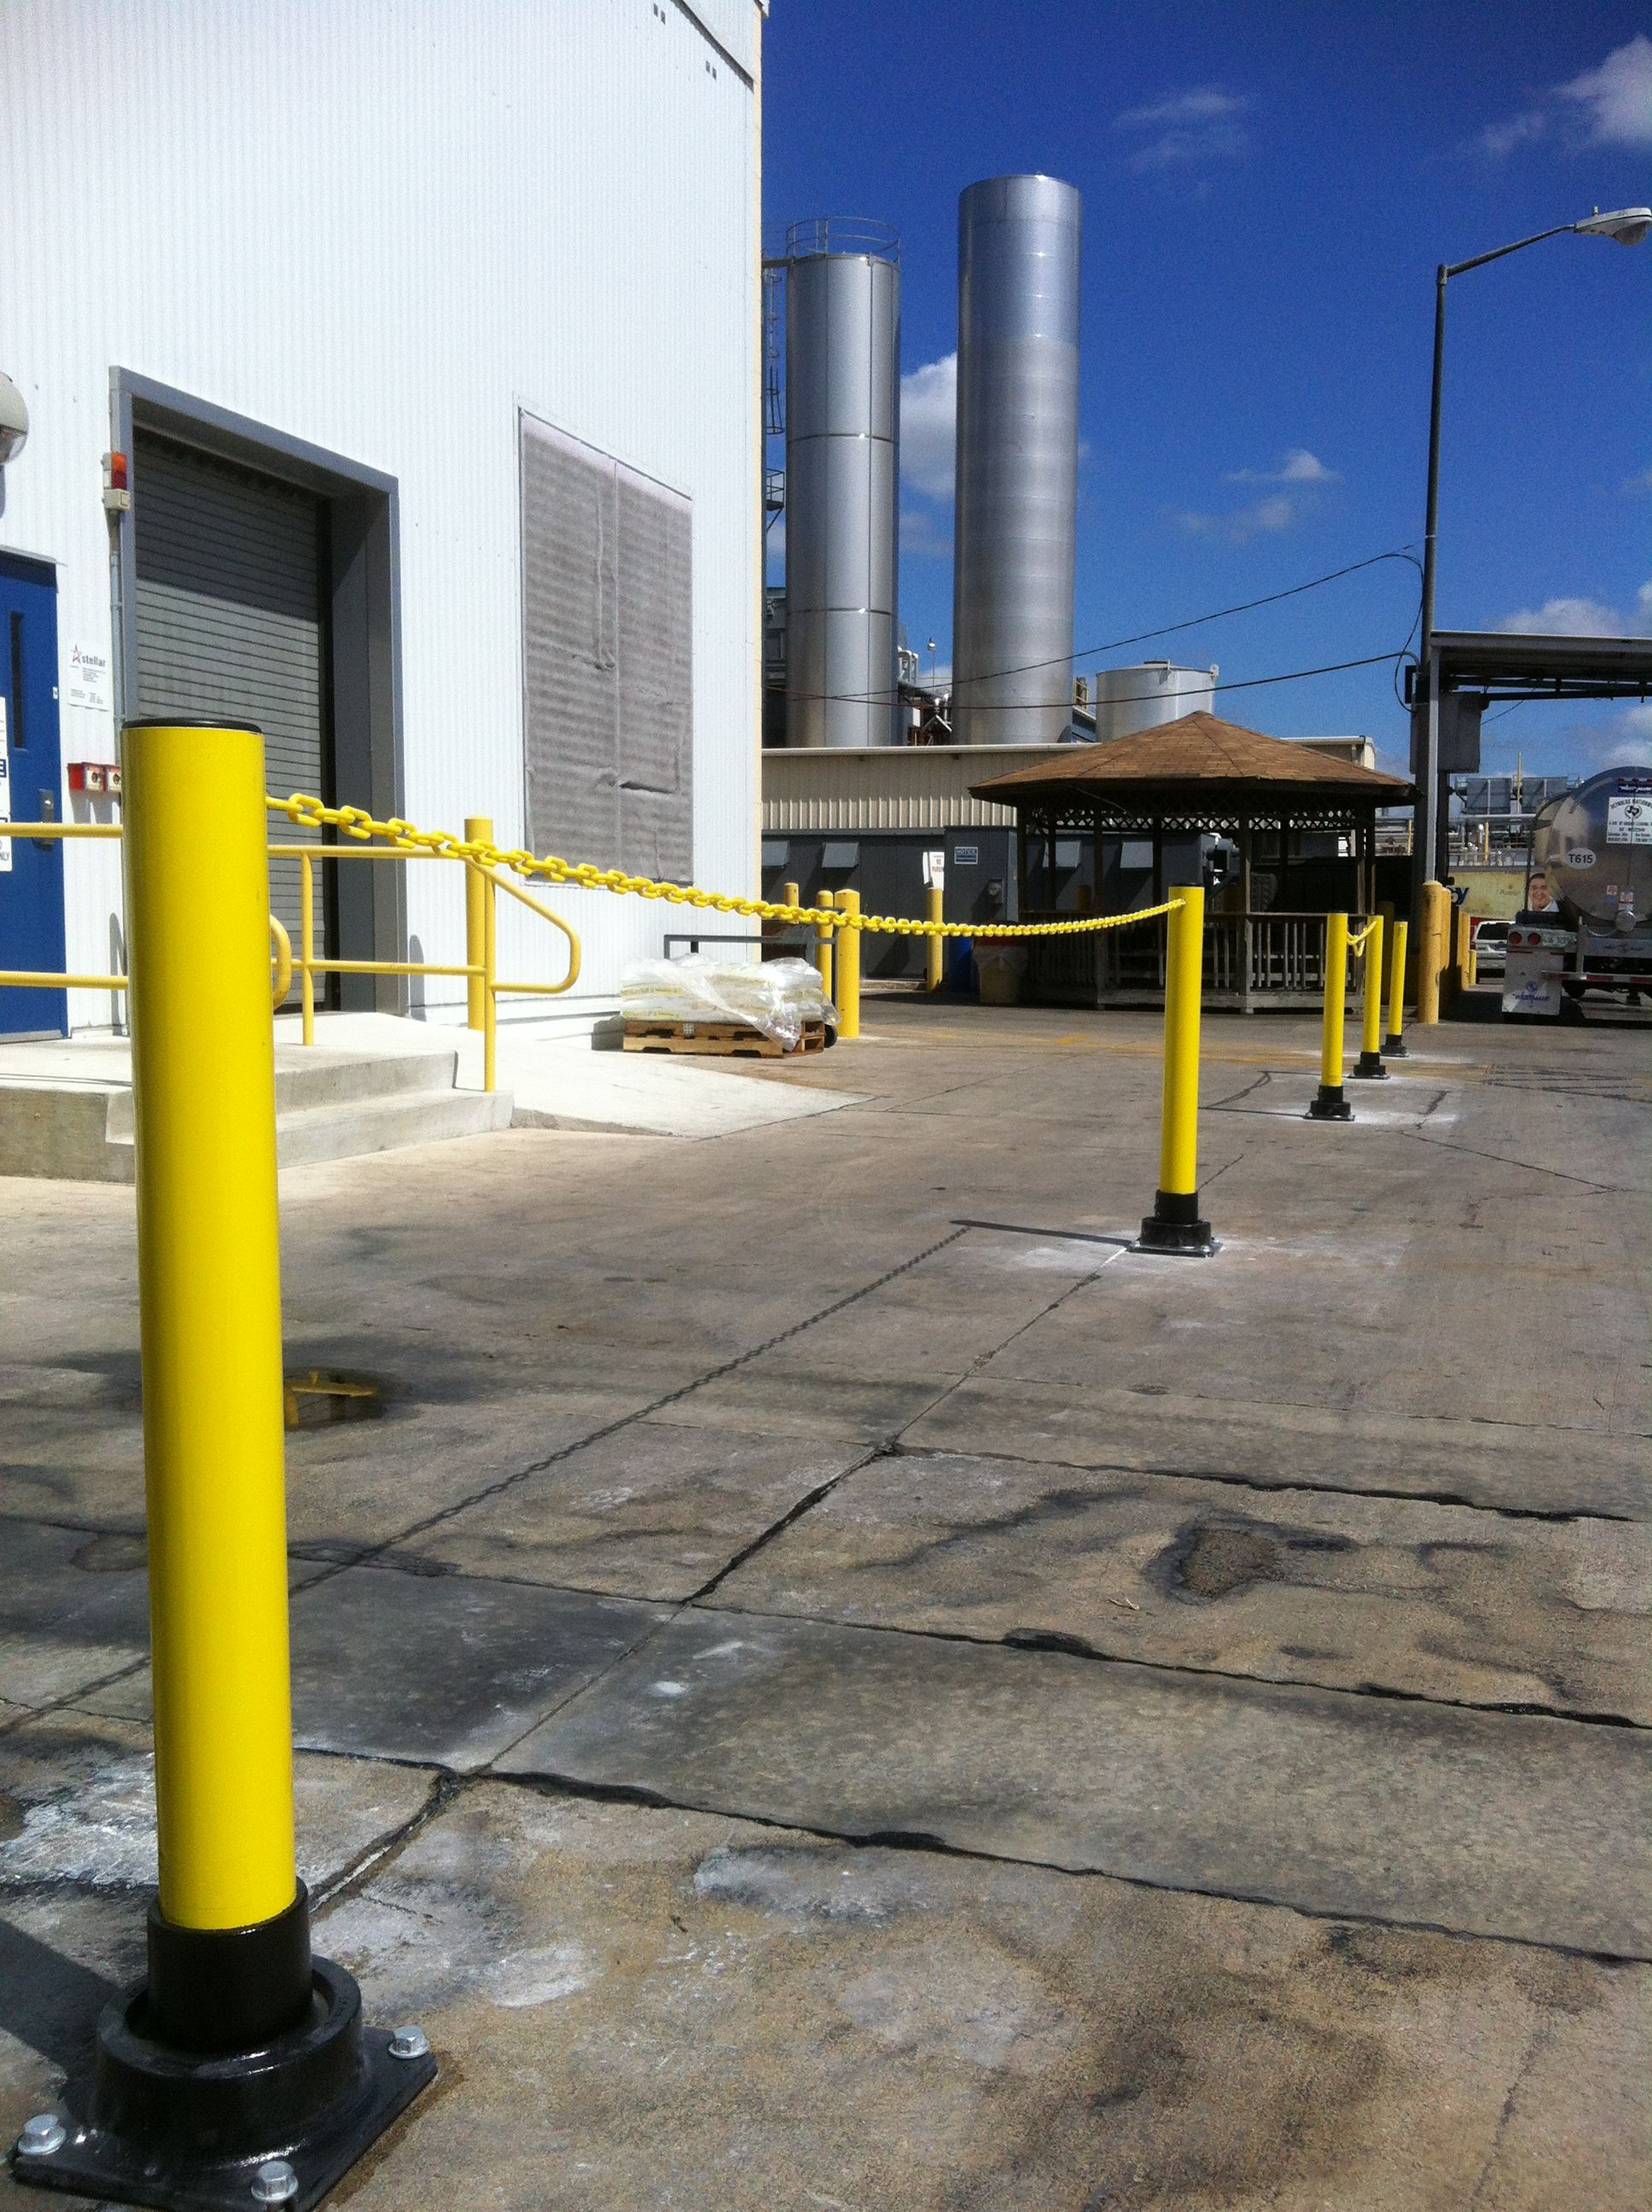 small resolution of heb warehouse in san antonio tx became a recent fan of slowstop bollards this installation shows chains connecting the bollards together to create a